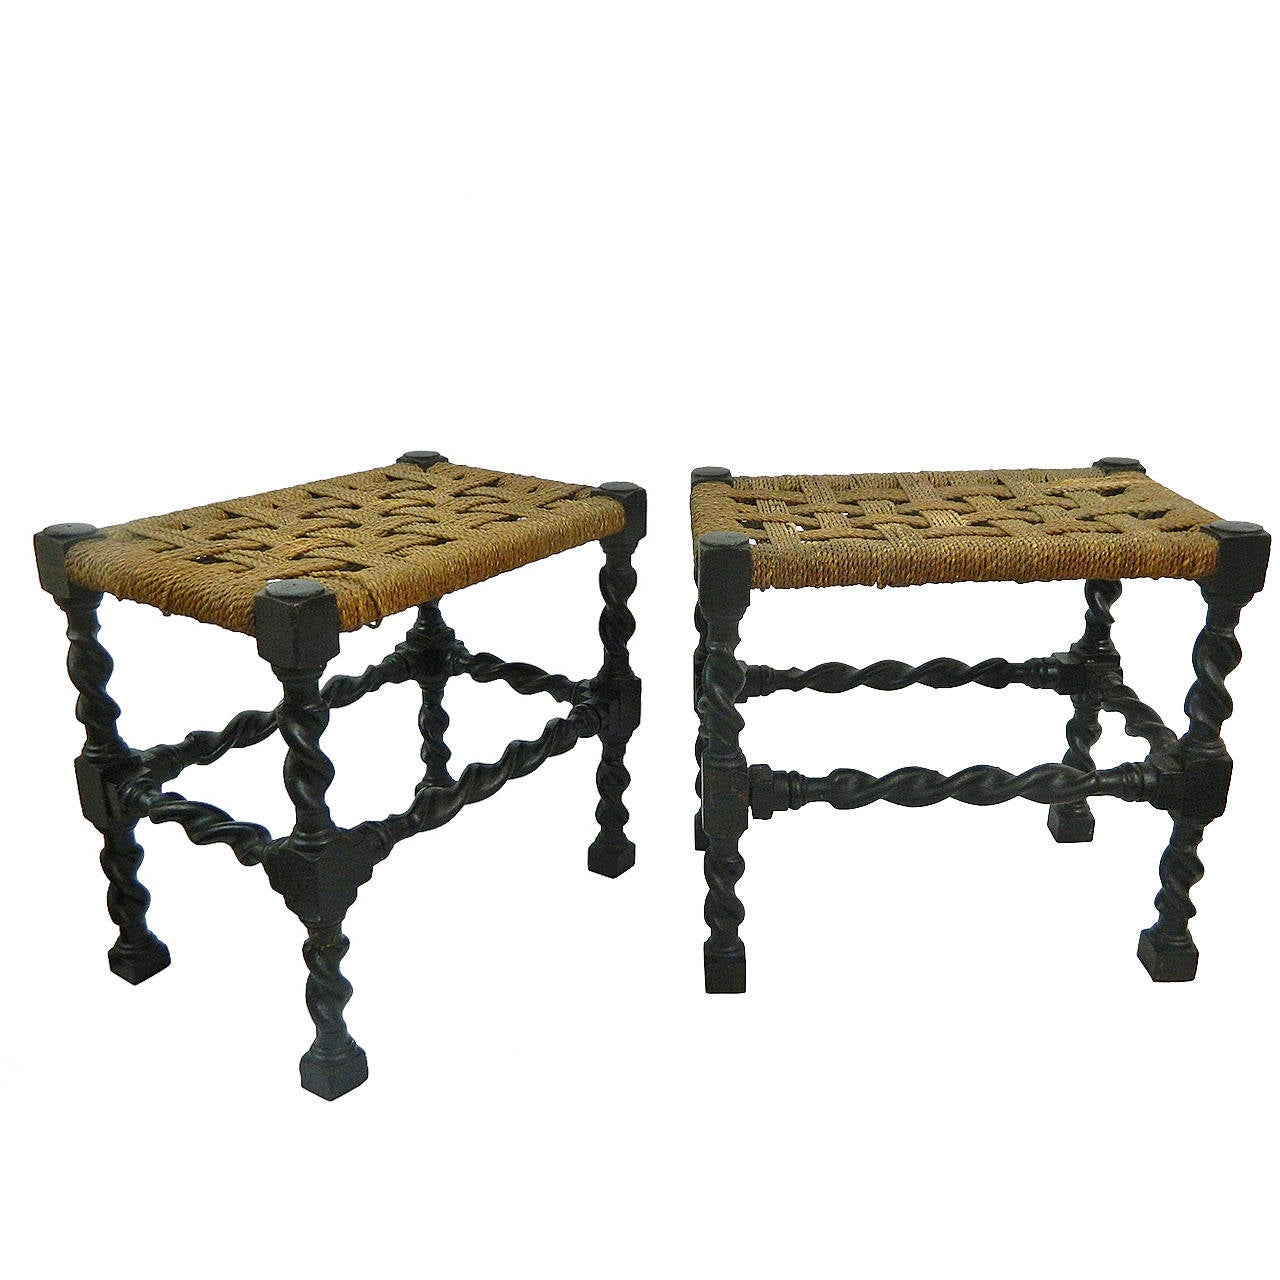 Pair of English Oak Barley Twist Stools with Rope Seats, 19th Century